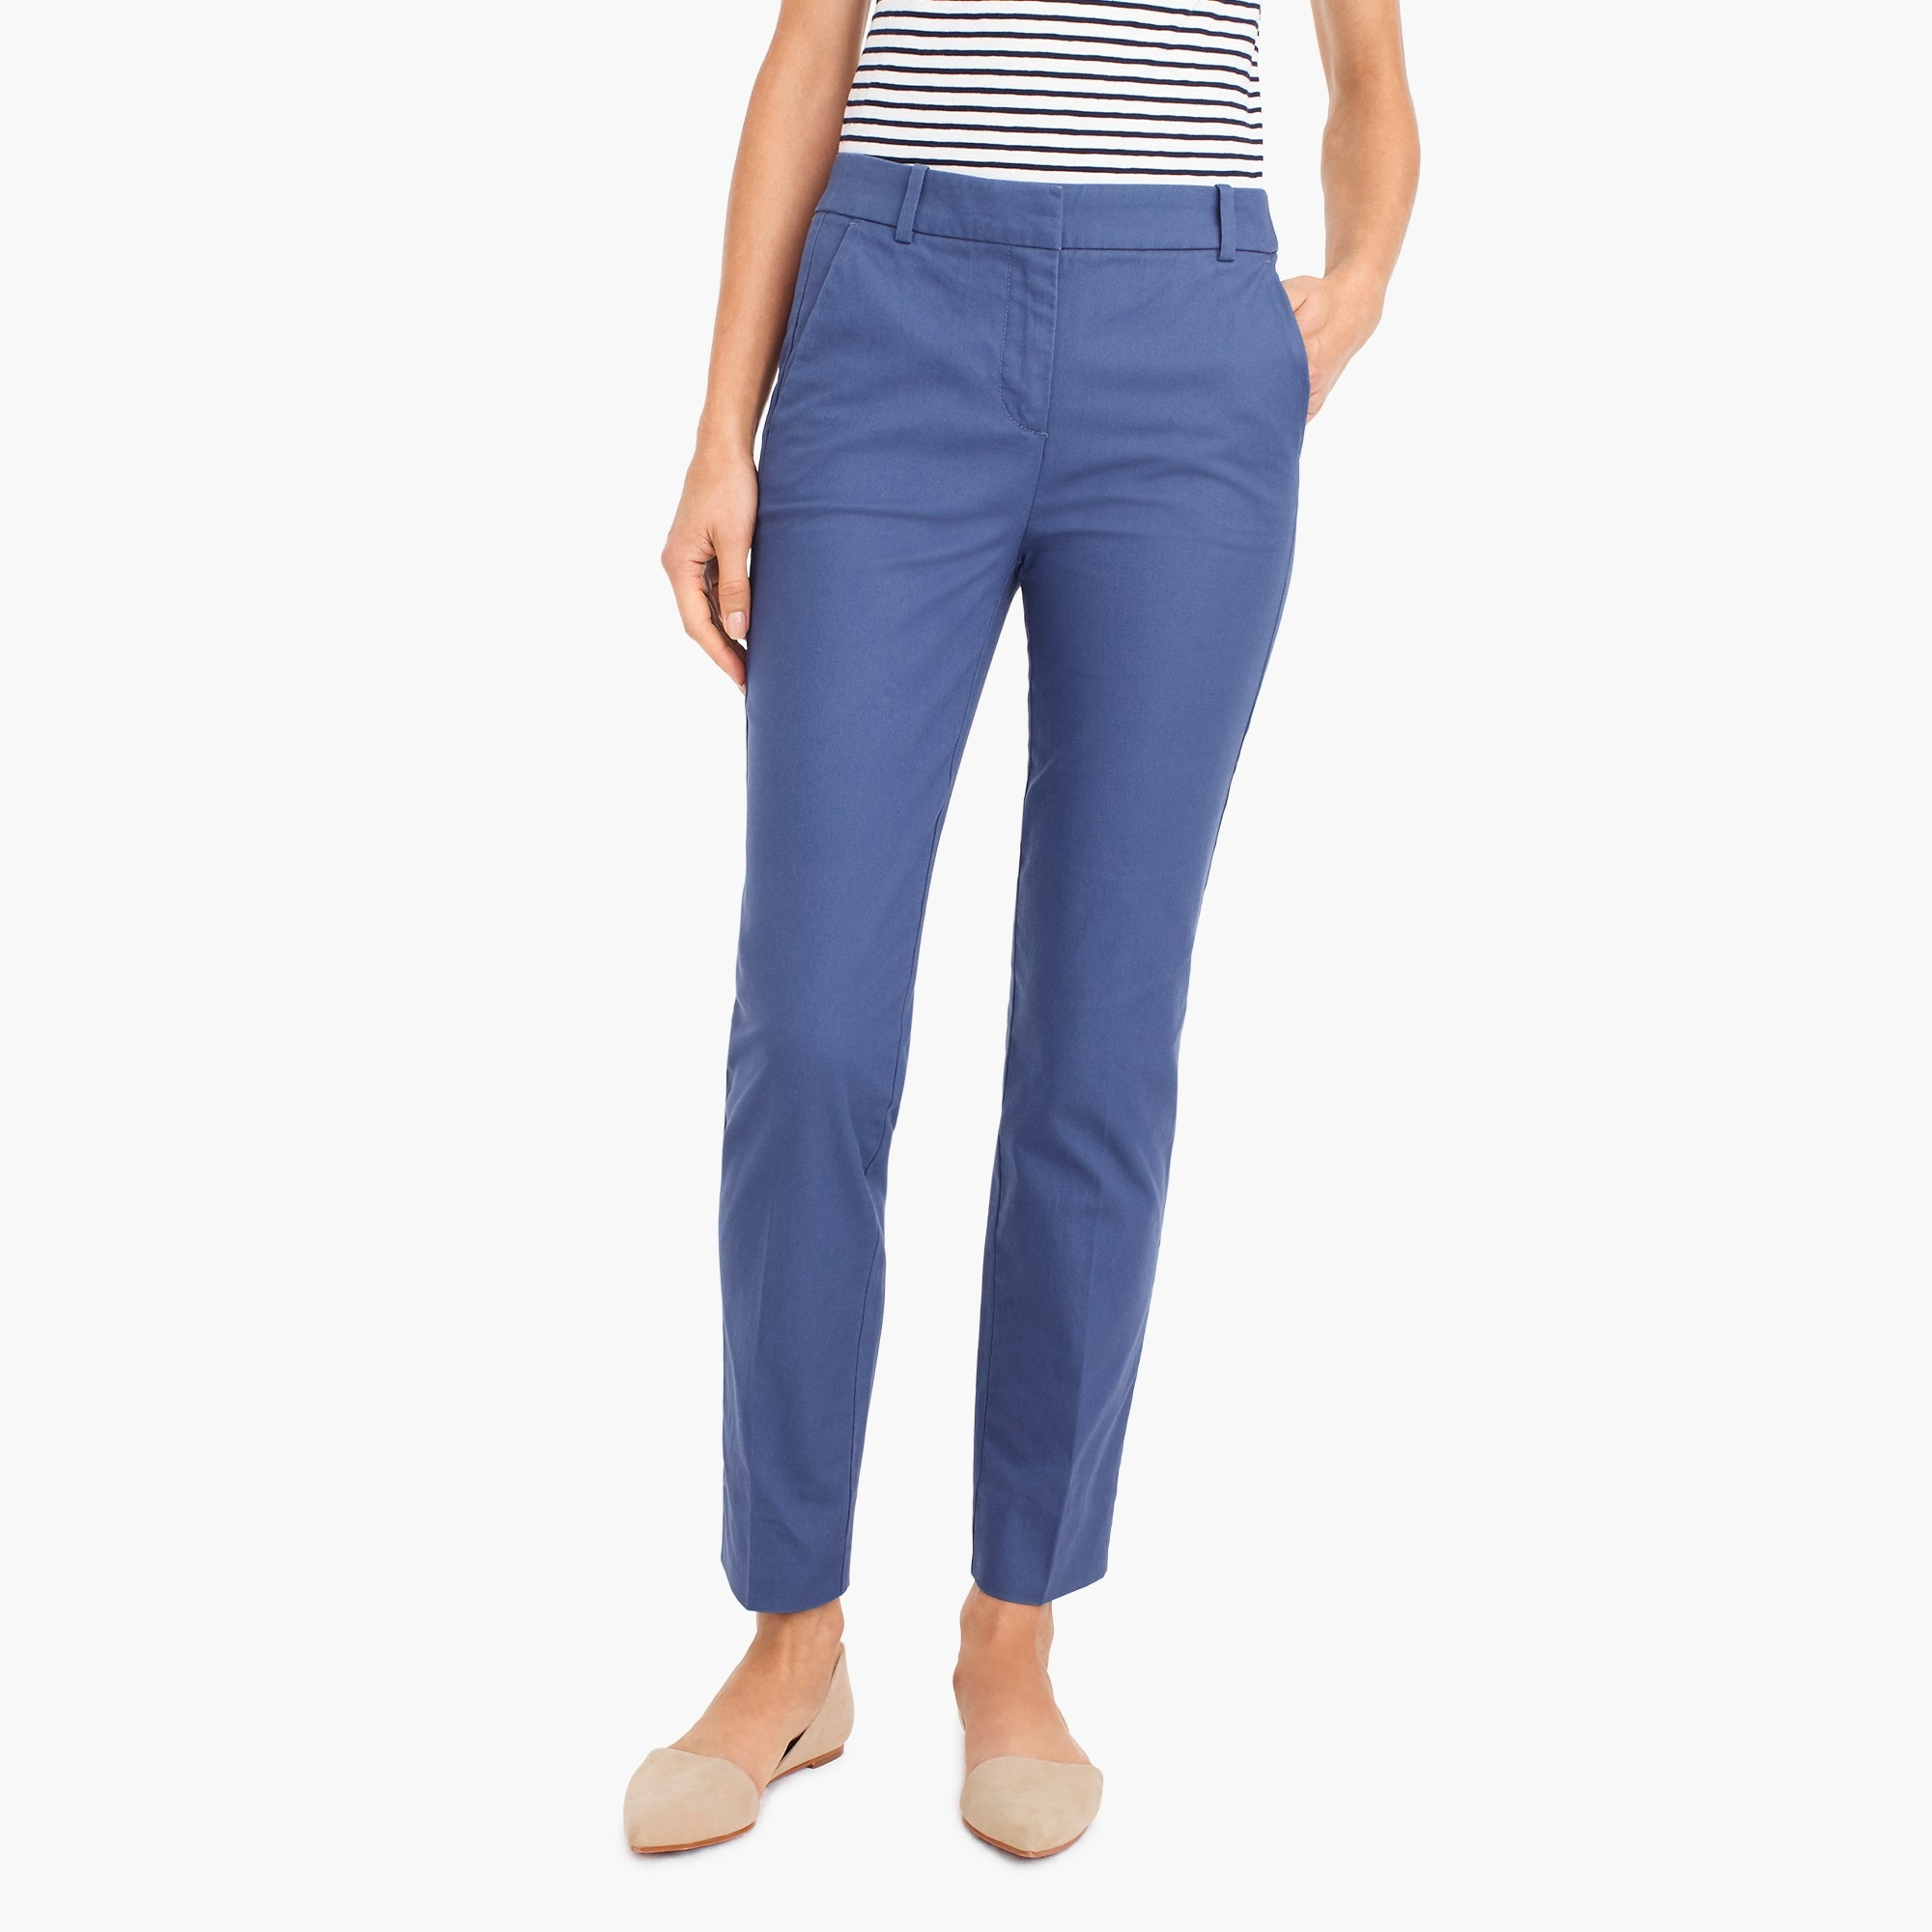 Image 4 for Petite effortless slim crop chino pant